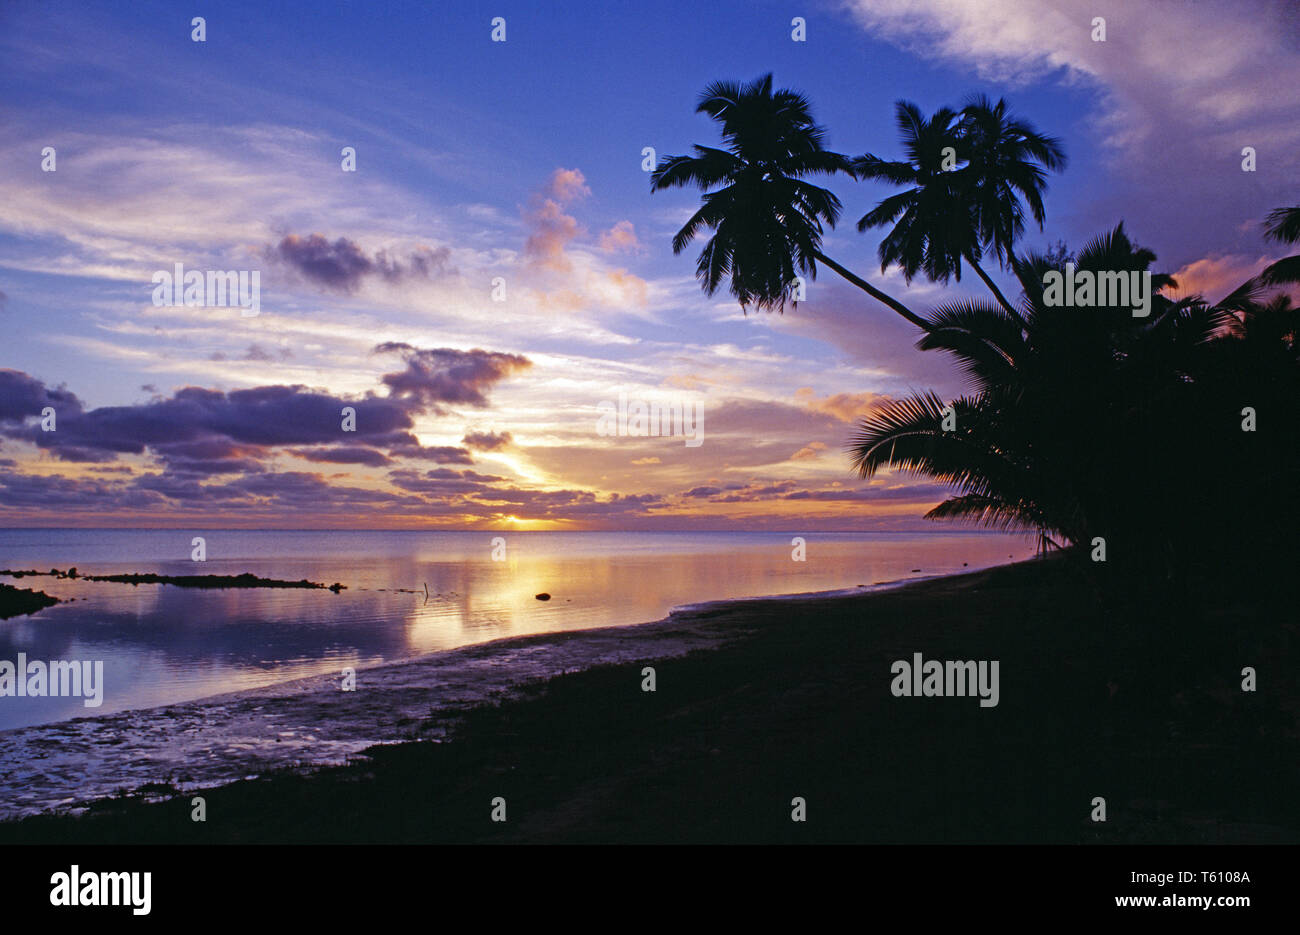 Cook Islands. Aitutaki. Tropical beach sunset with coconut palm trees. - Stock Image